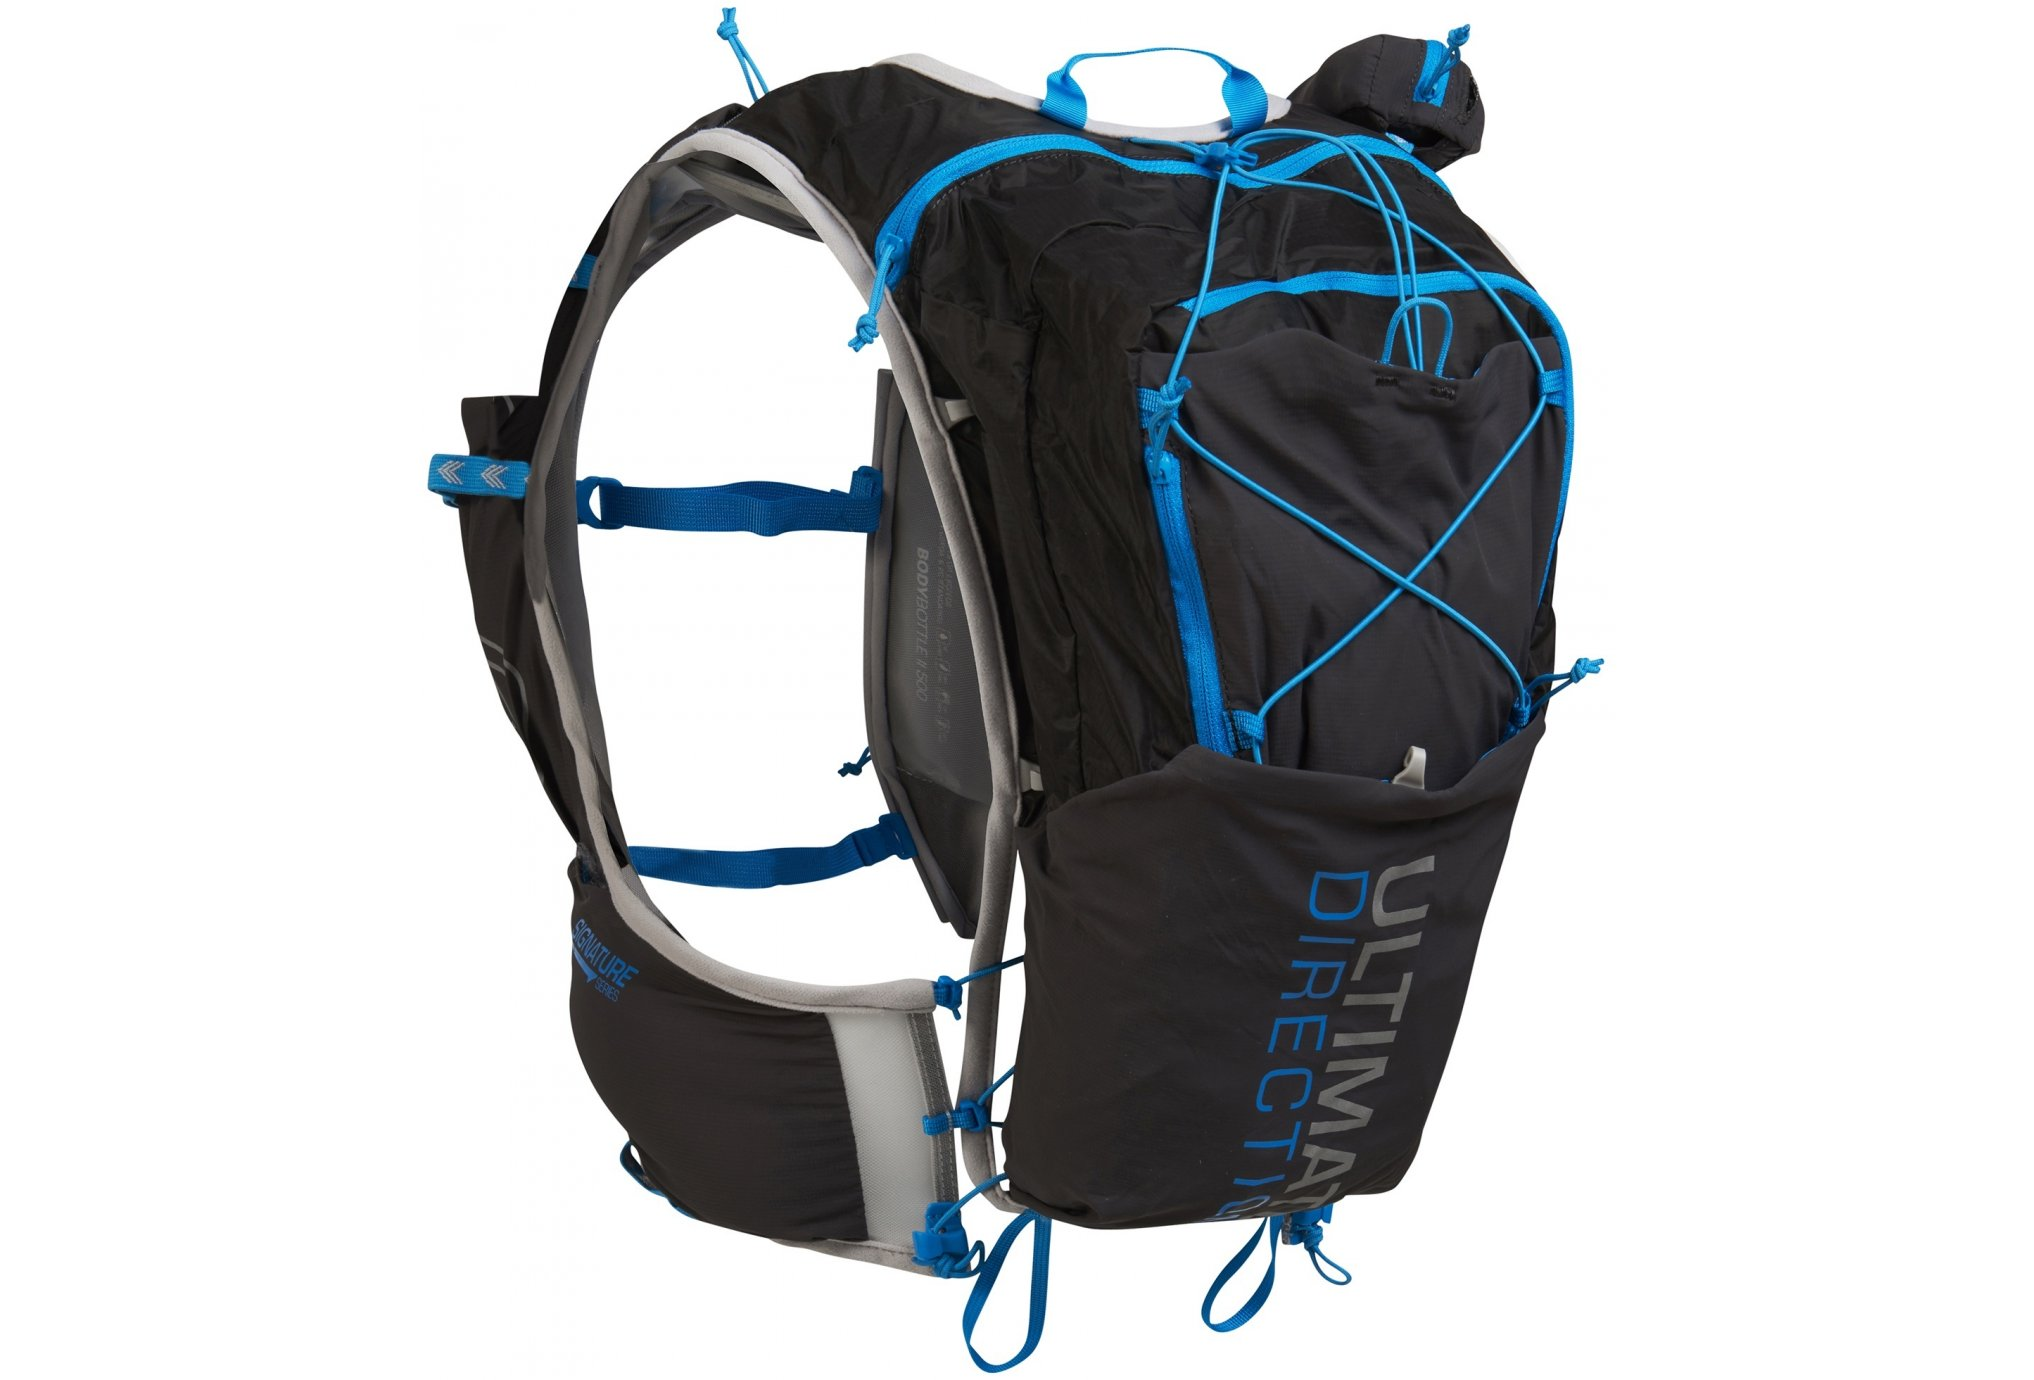 Ultimate Direction Adventure Vest 5.0 Sac hydratation / Gourde